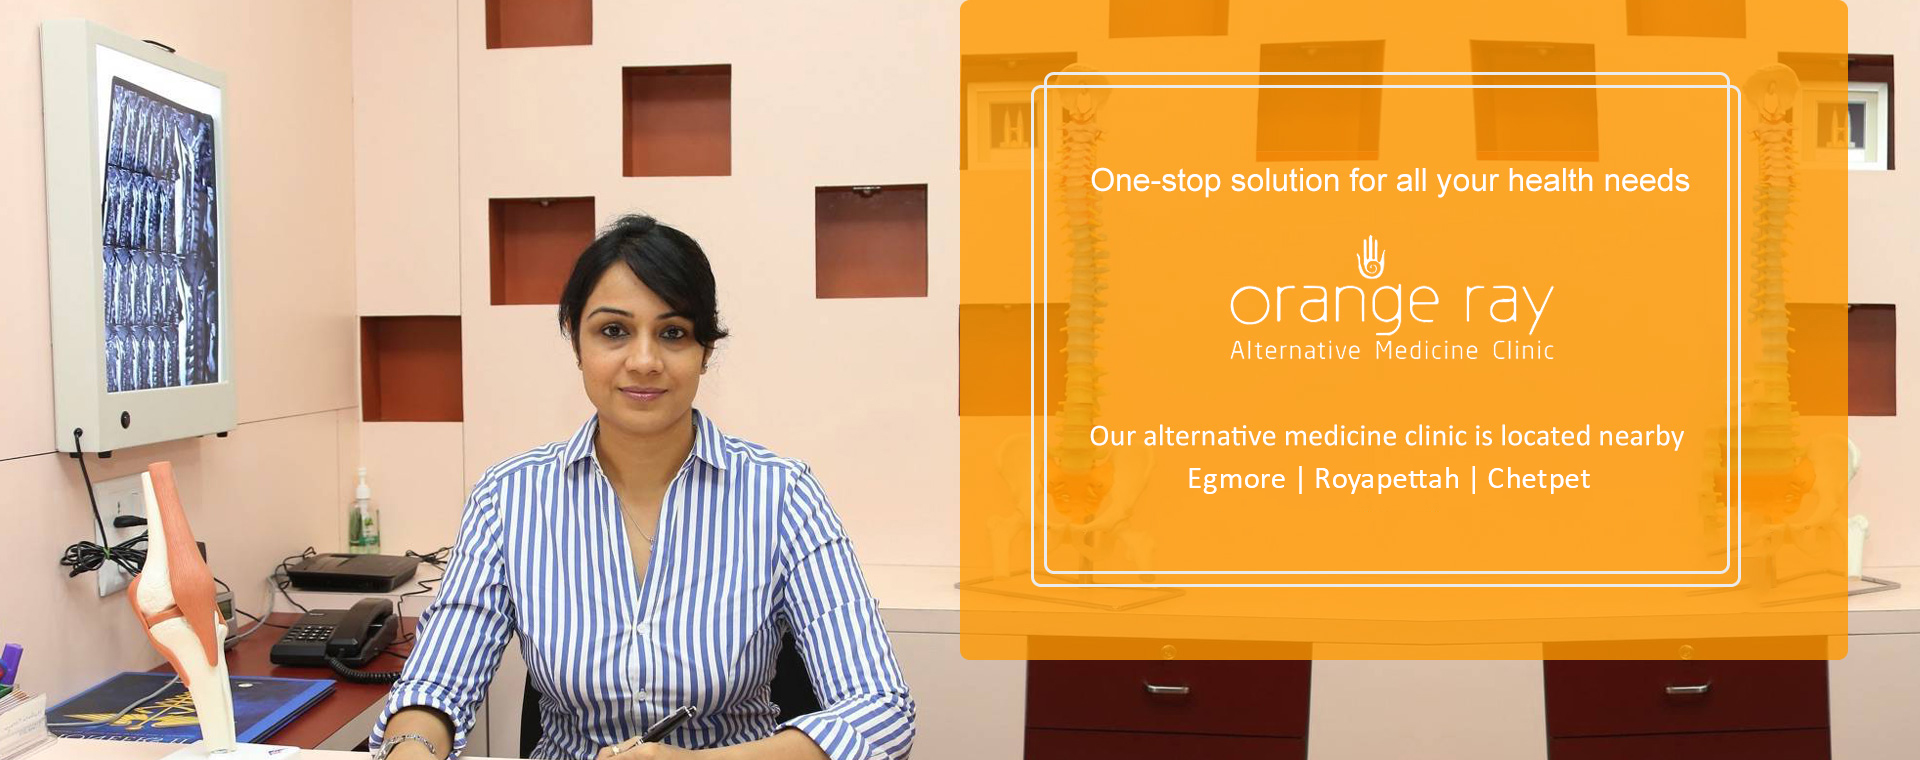 Orange Ray alternative medicine clinic in Egmore